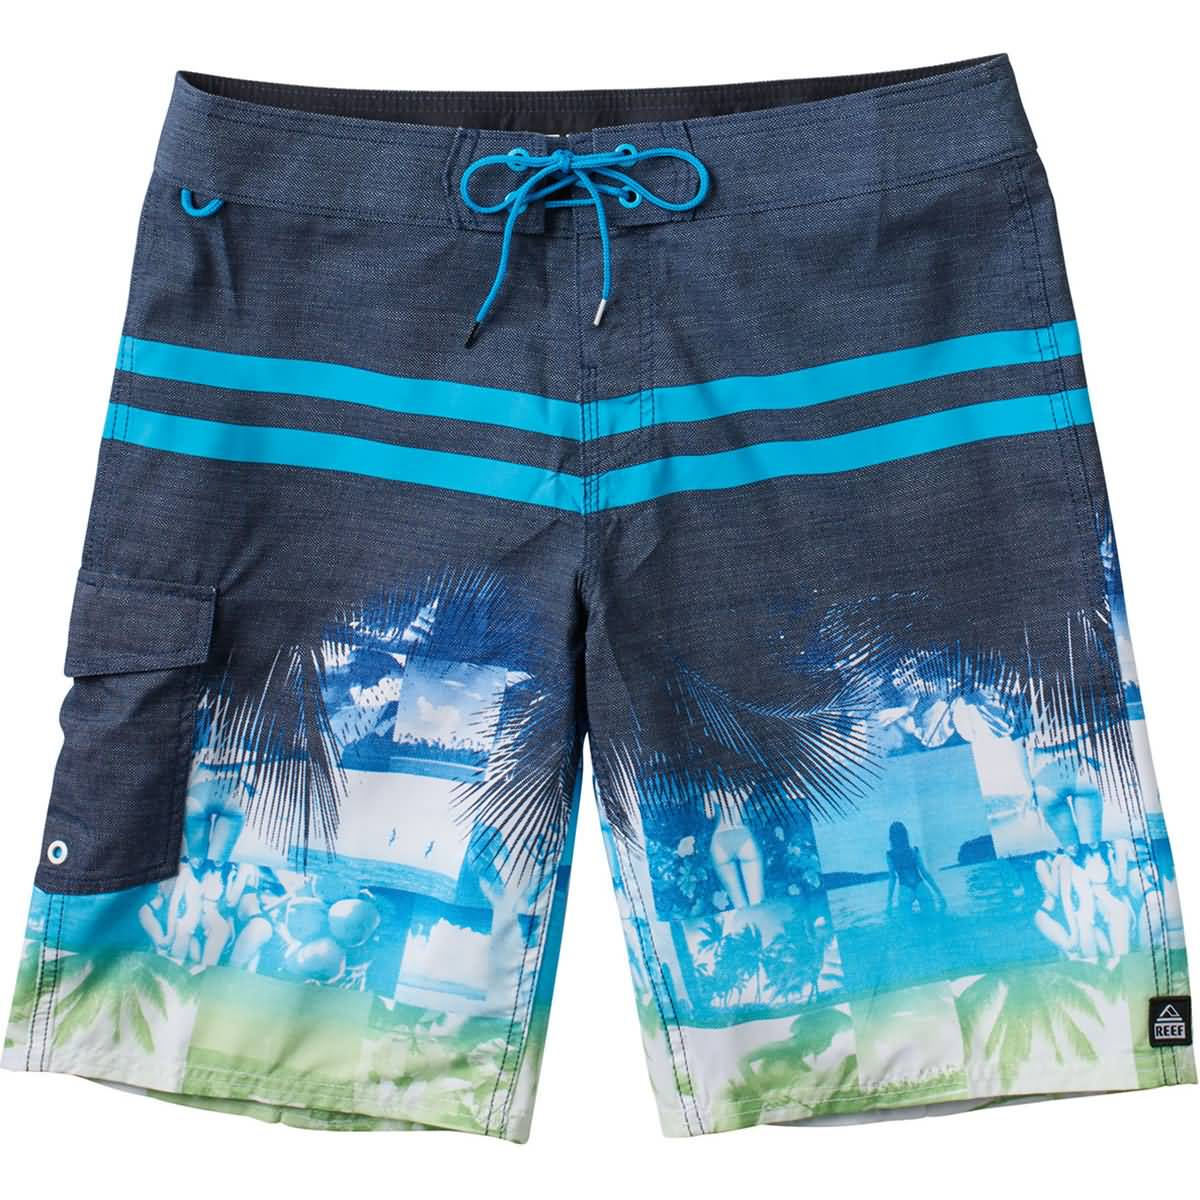 Reef Maine Men's Boardshort Shorts-RF-0A2YF3BLU